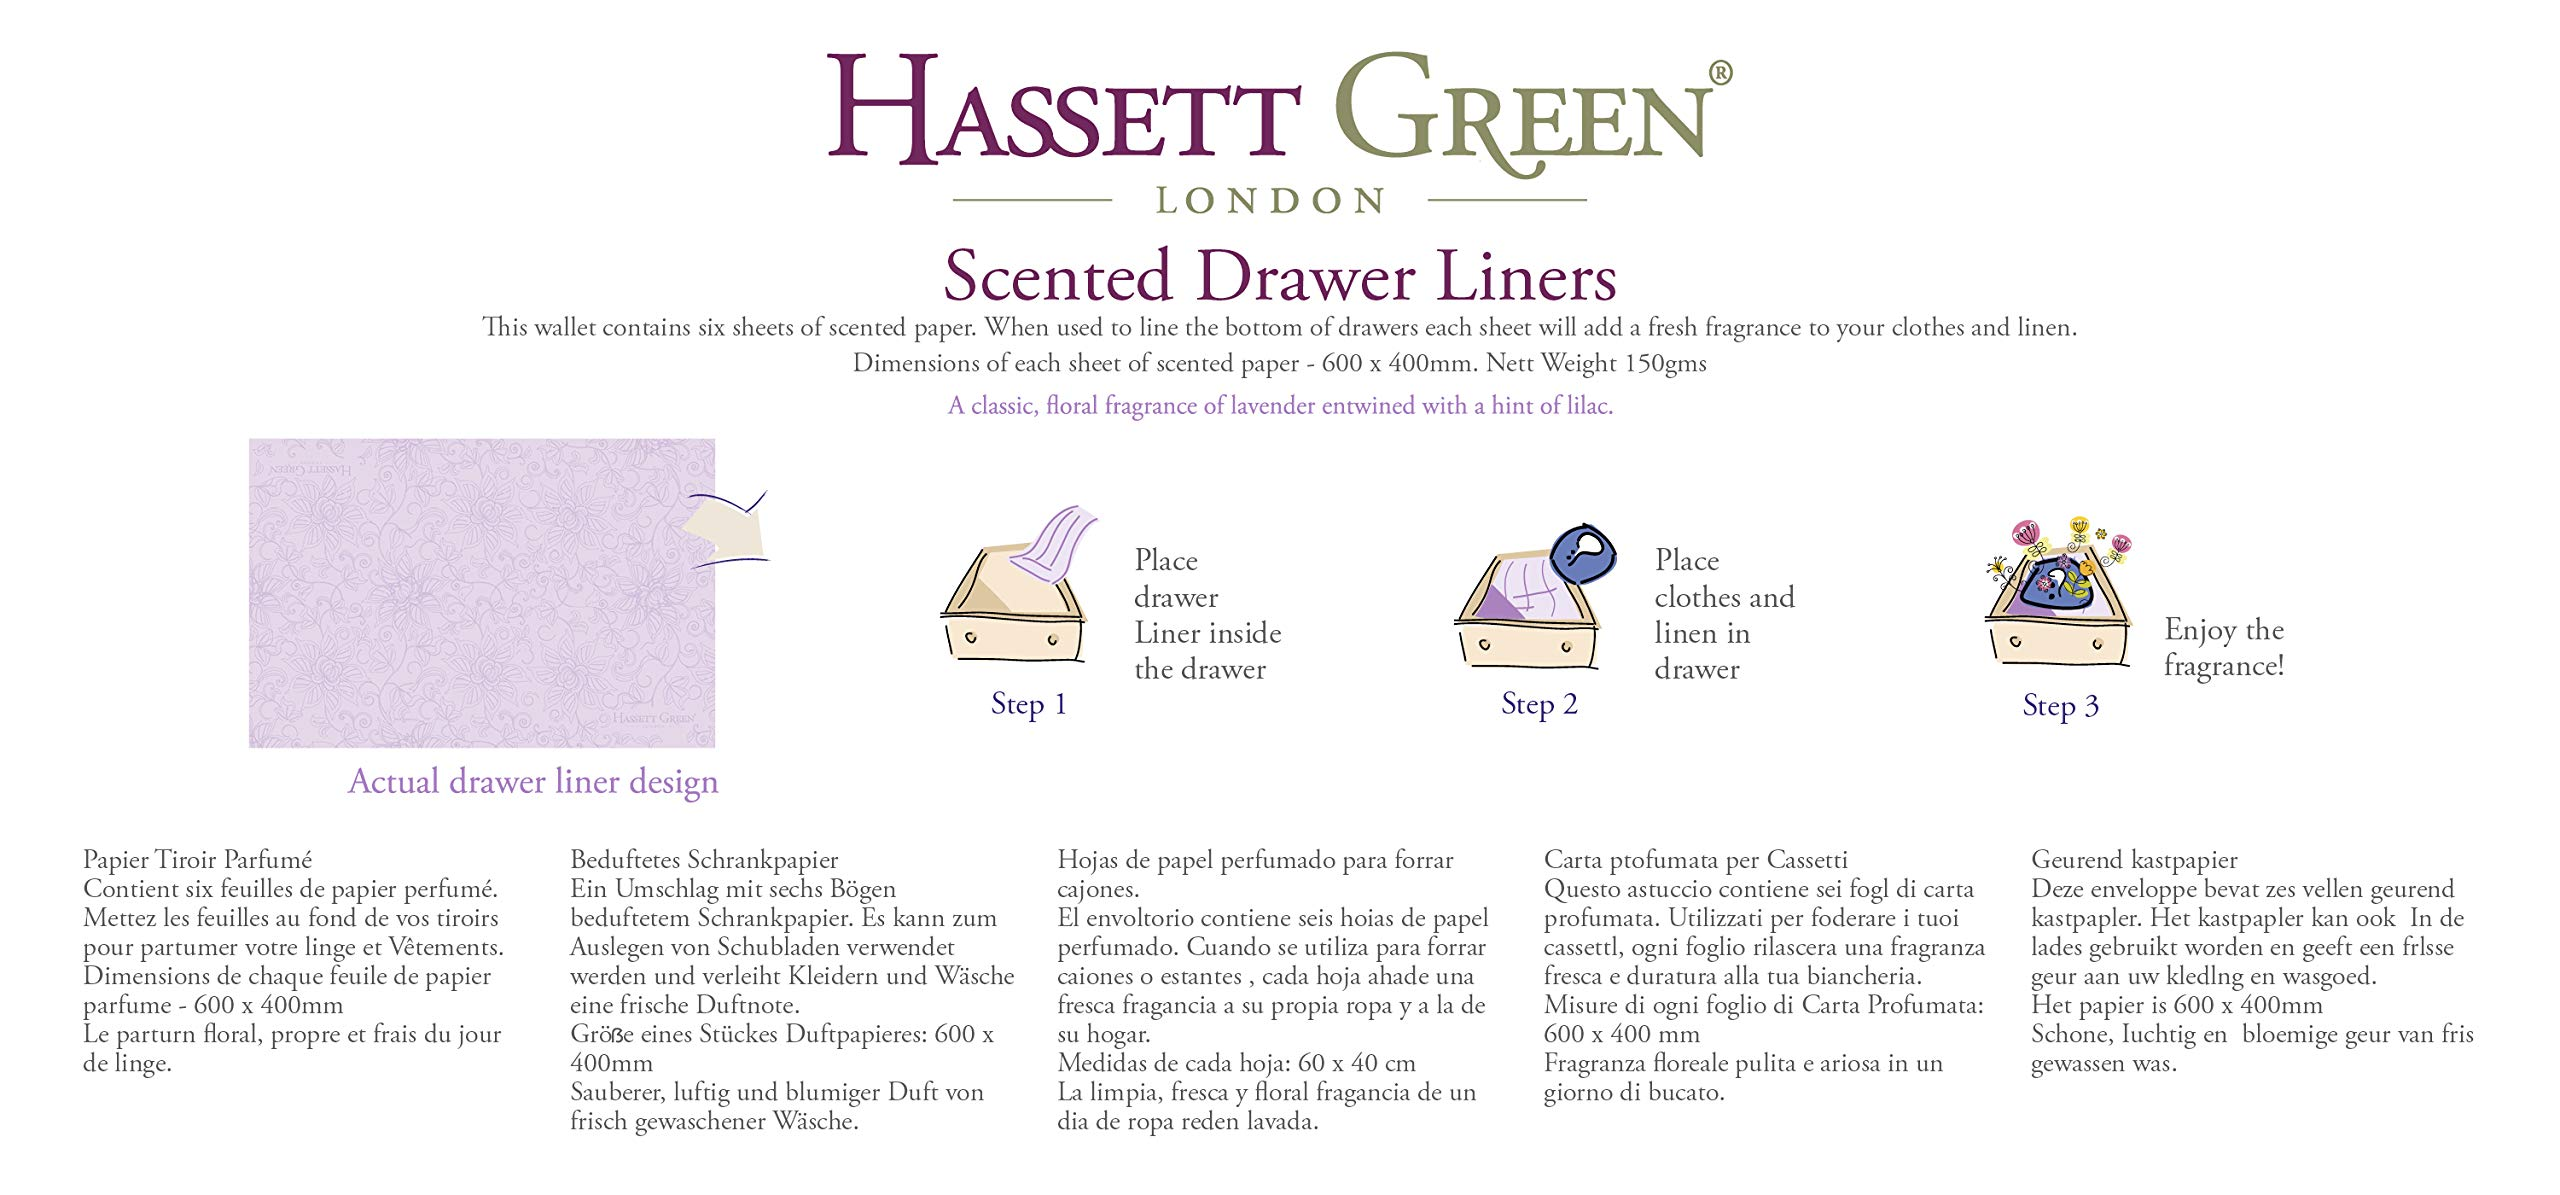 Hassett Green London Four Pack Scented Drawer Liners - Natural Cotton - Lilac & Lavender - Hearts & Roses - Sensual Sensuelle - 6 Sheets Size 600 x 400 in Every Box by Hassett Green London